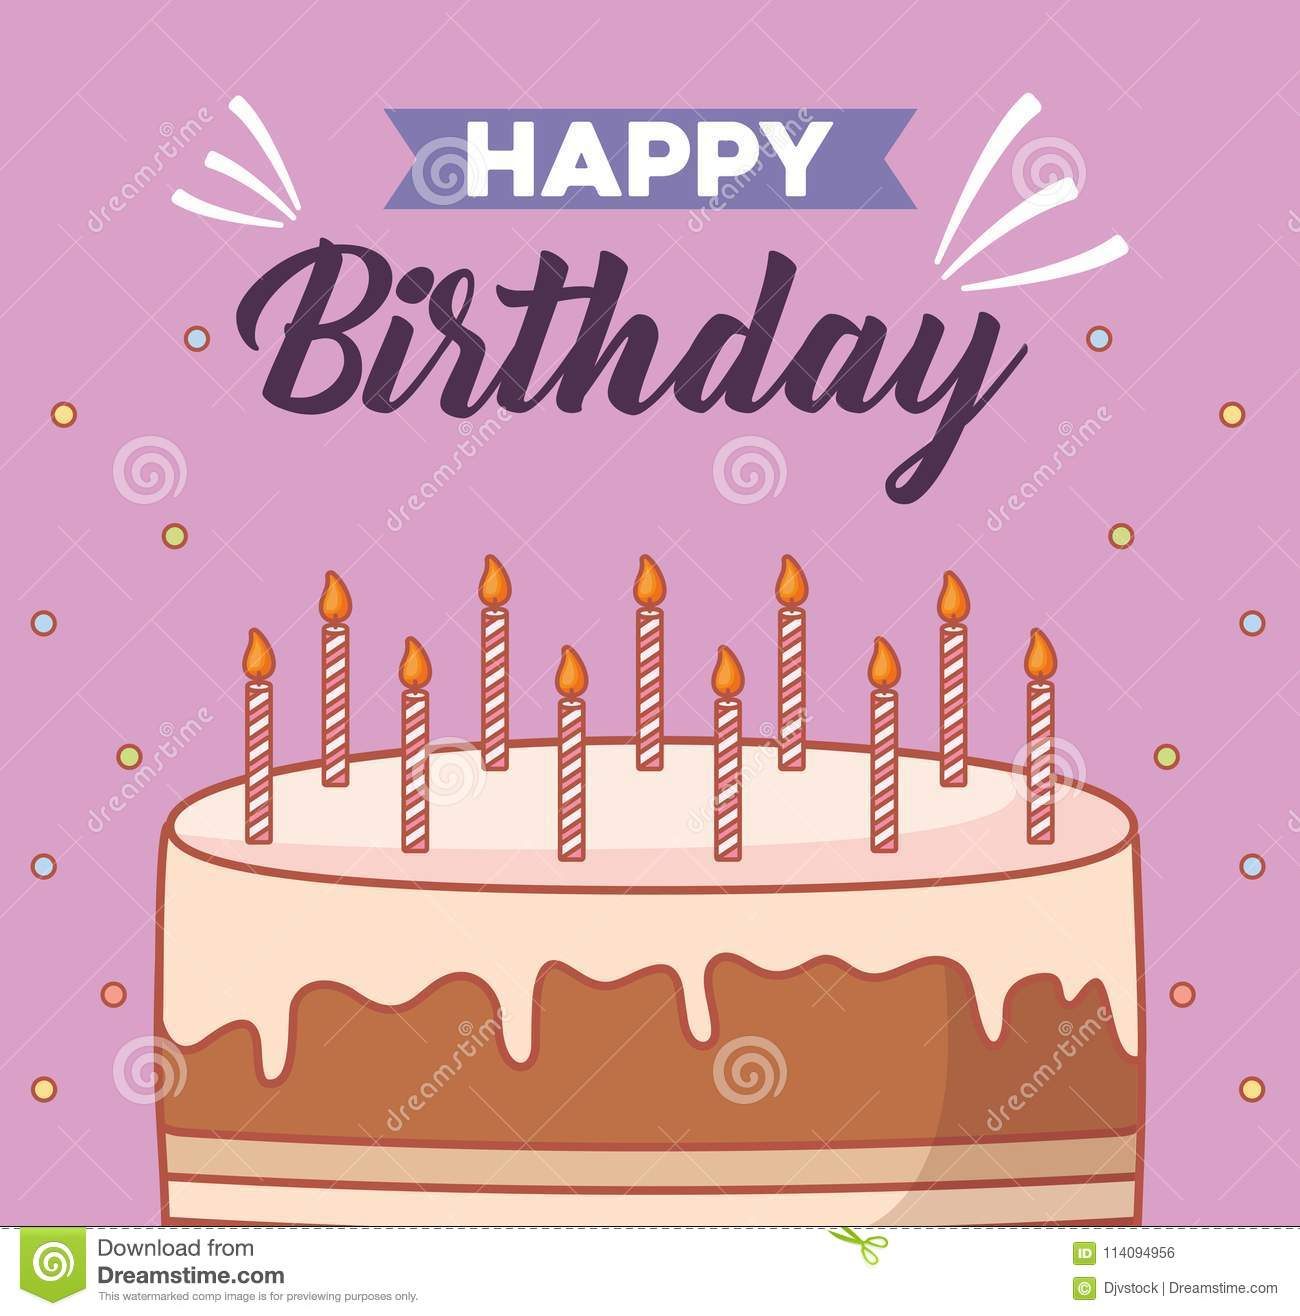 Happy Birthday Design Stock Vector Illustration Of Decorative